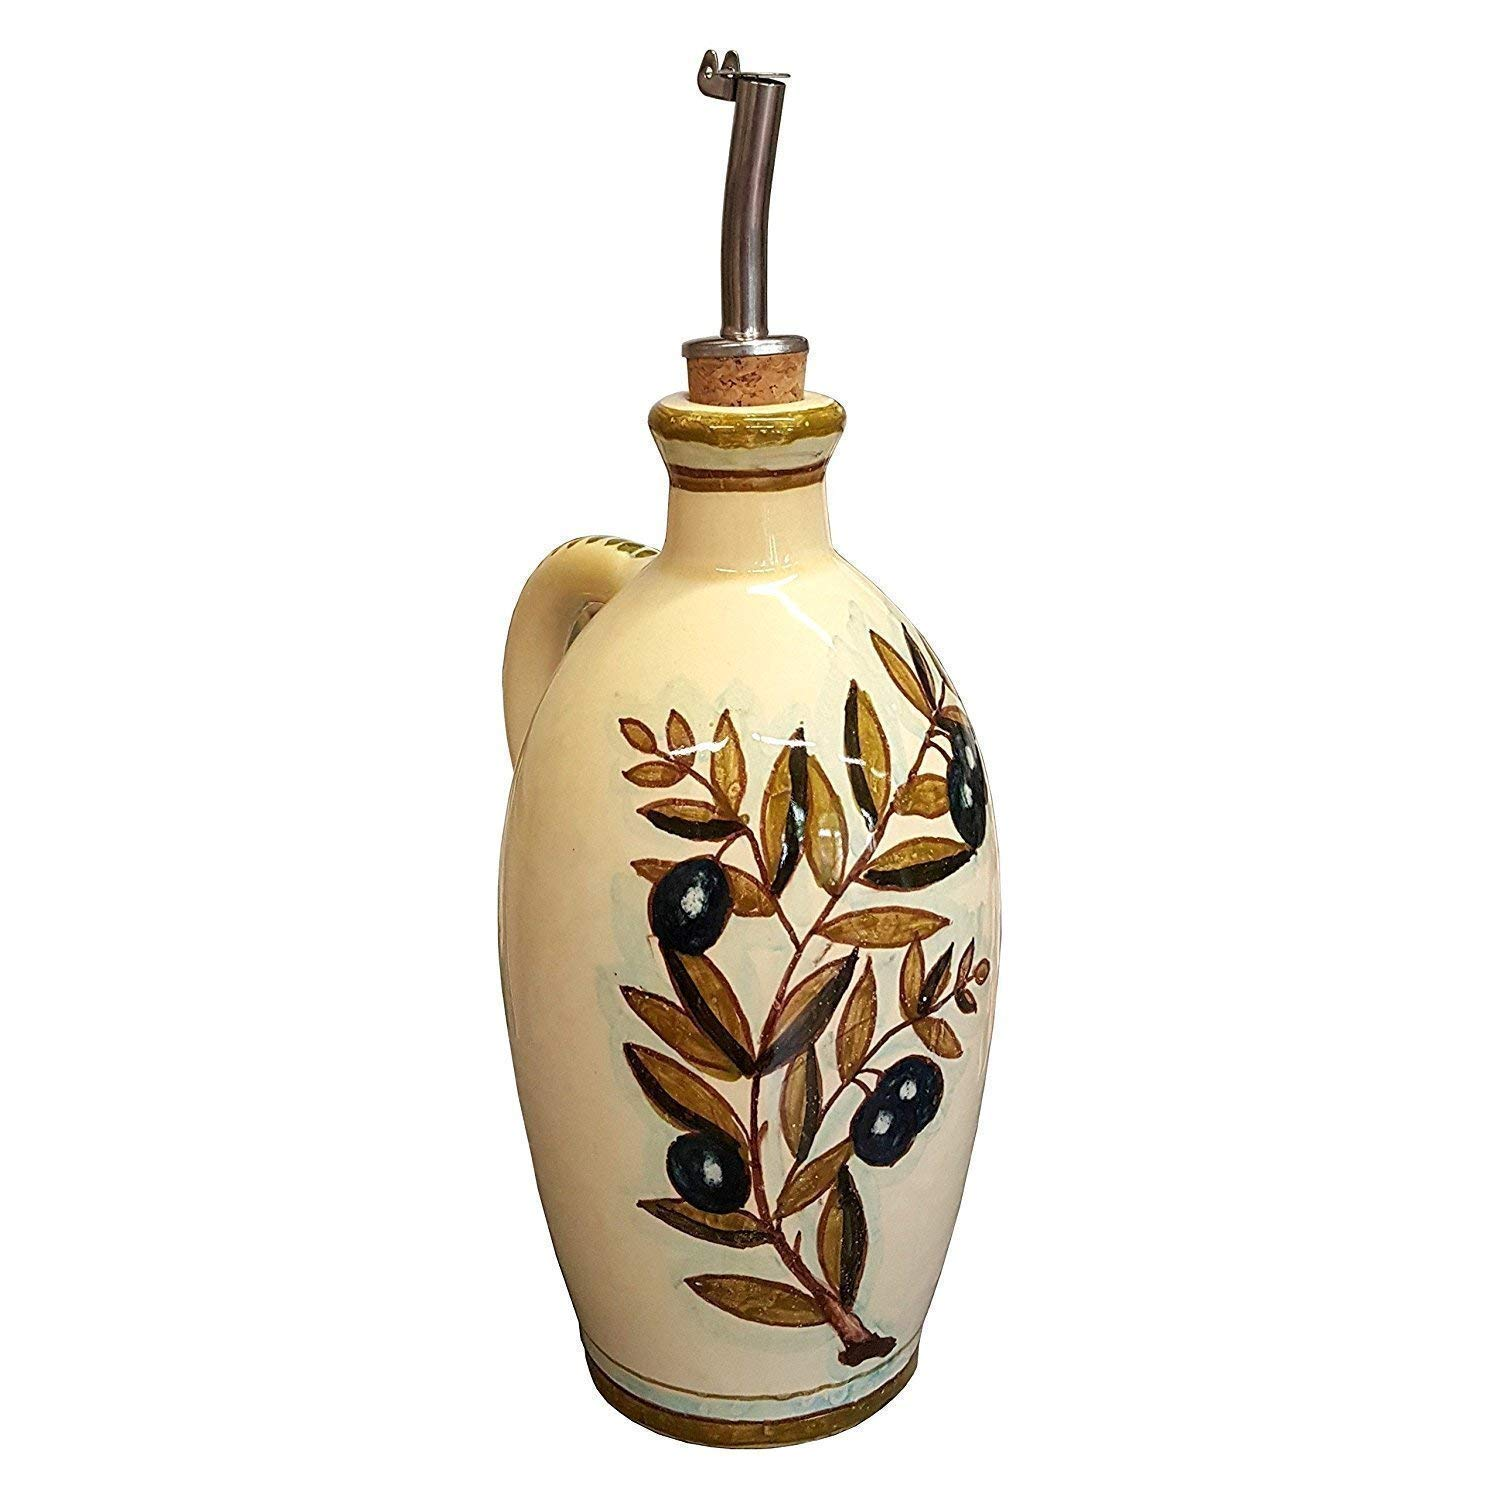 CERAMICHE D'ARTE PARRINI - Italian Ceramic Art Pottery Oil Cruet Bottle Hand Painted Decorated Olives Made in ITALY Tuscan